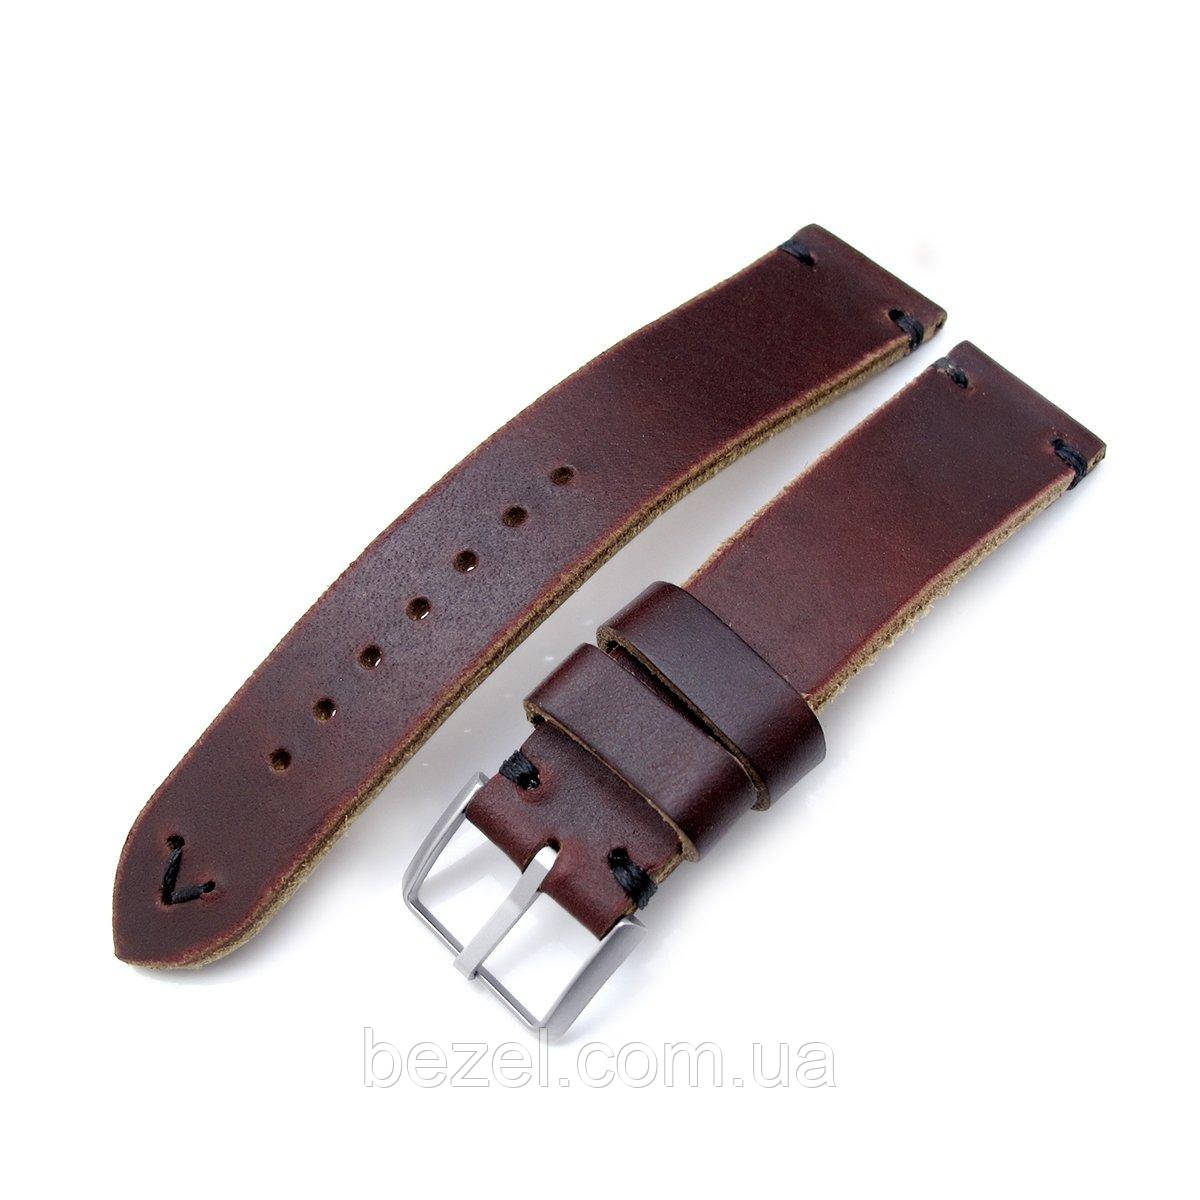 20mm, 22mm MiLTAT Horween Chromexcel Watch Strap, Burgundy Brown, Black Stitching